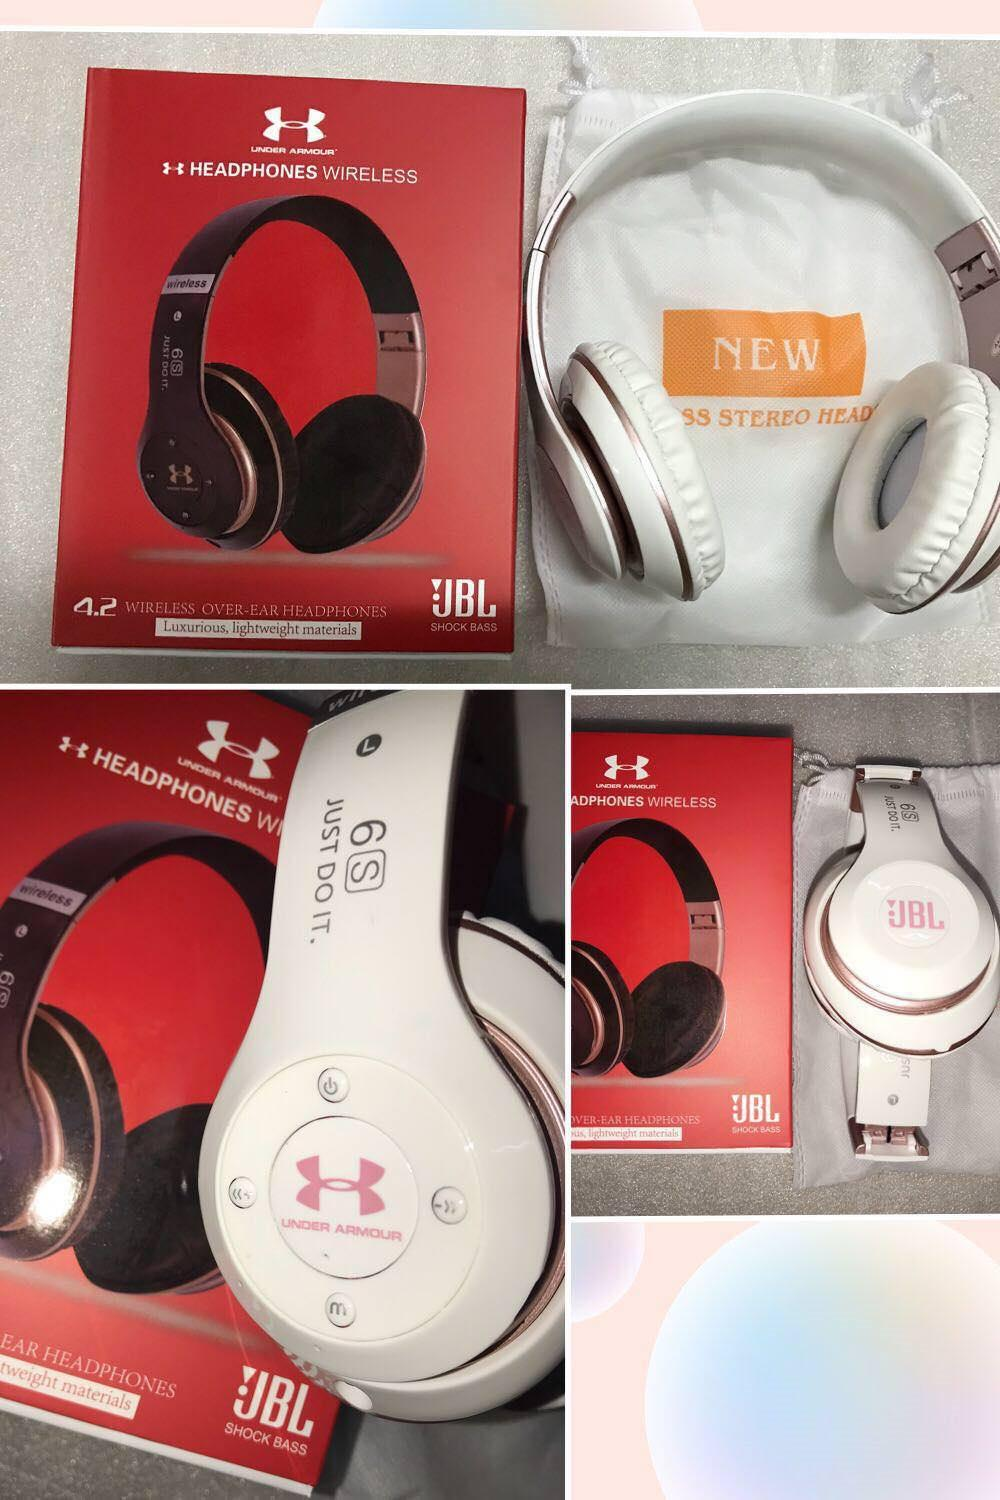 Over The Ear Headphone For Sale Headphones Prices Headset Bluetooth Jbl X Under Armour Earphone Wireless Handsfree Blackunder 42 Stereo 1pcs New